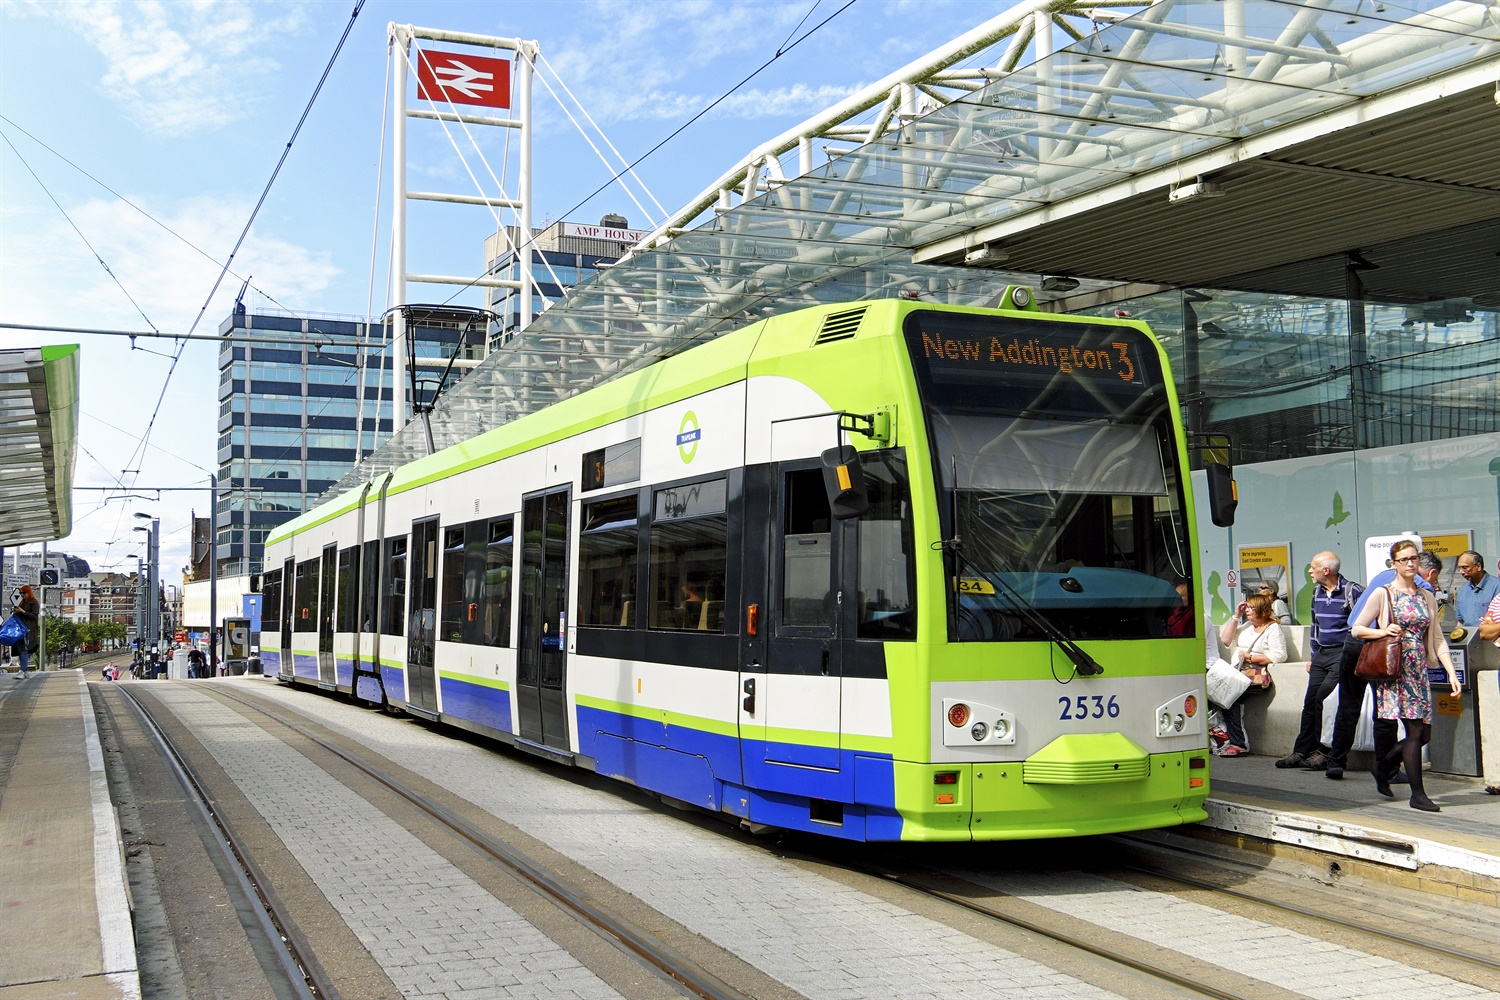 TfL seeks suppliers for post-Croydon automatic braking system on London Trams